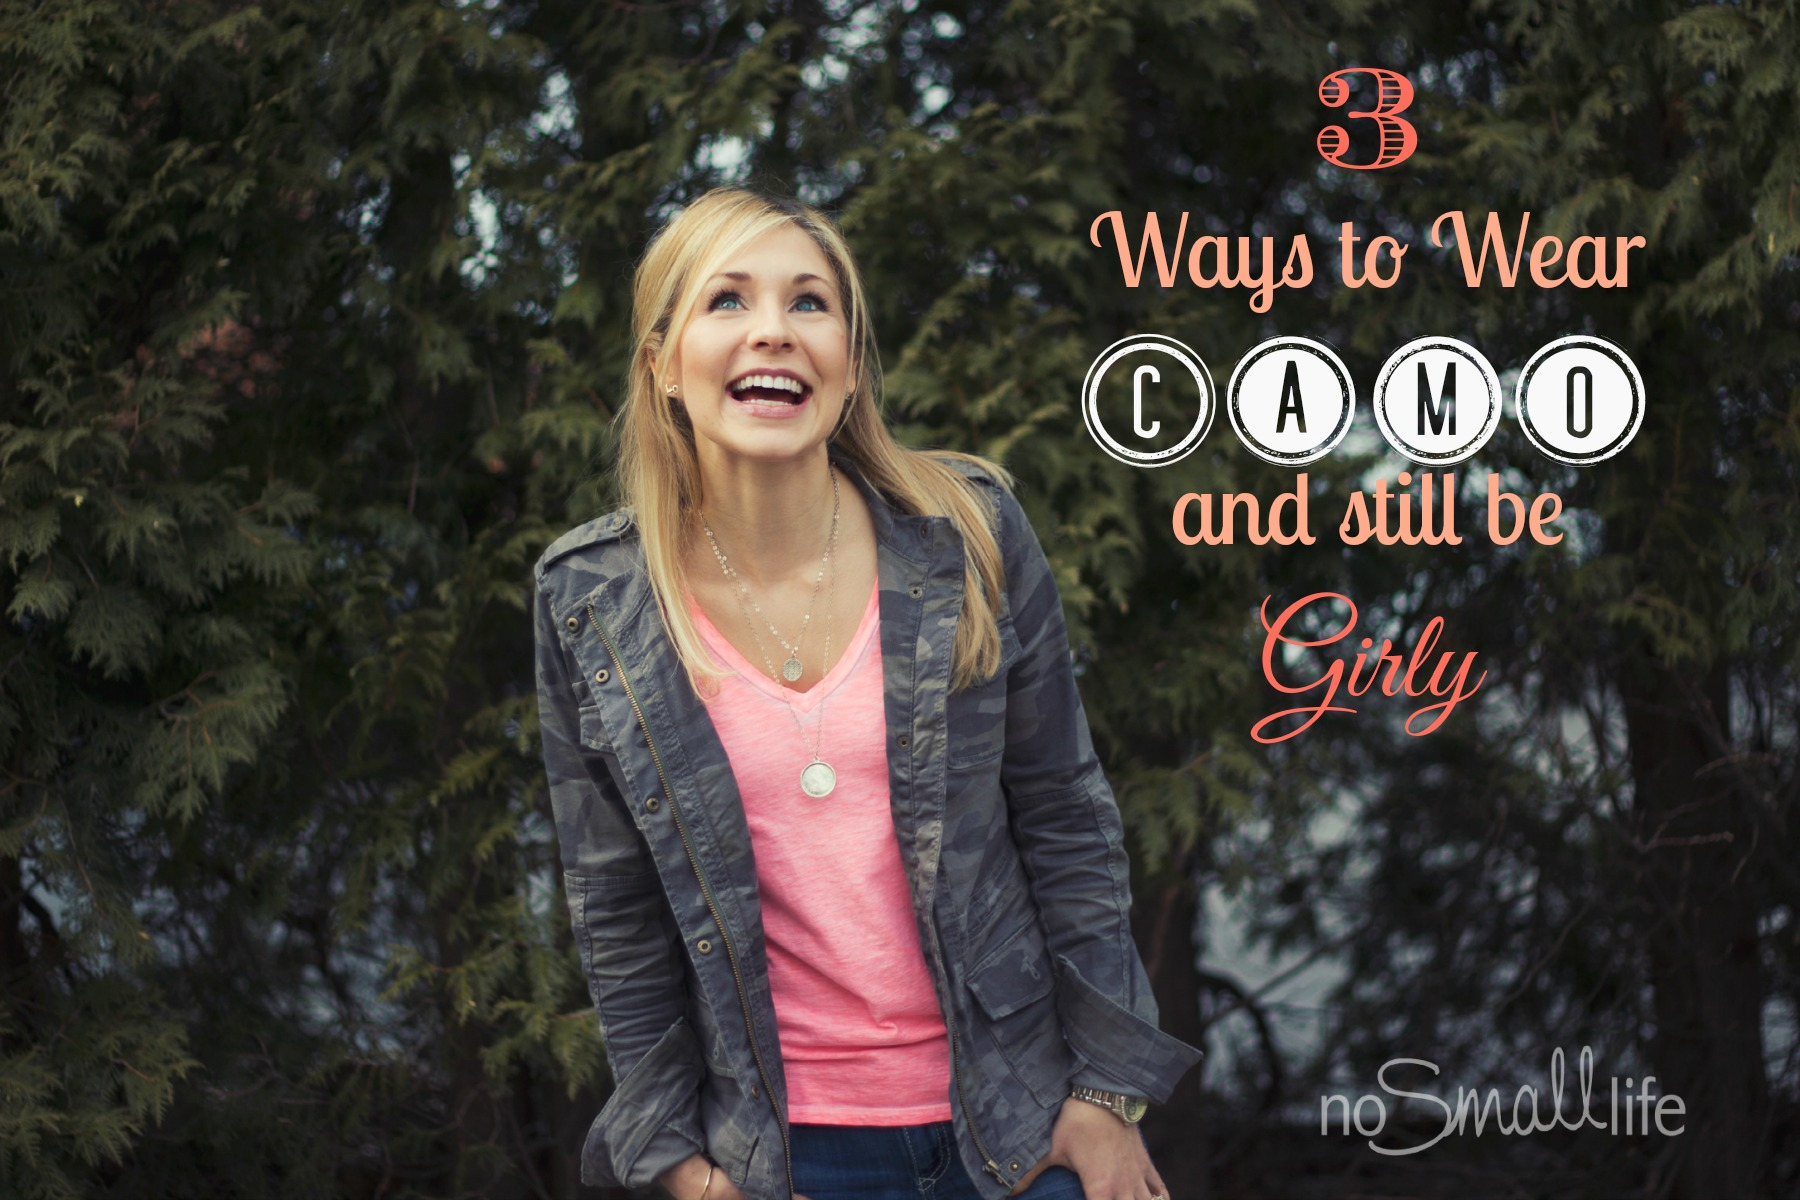 3 Ways to Be Girly